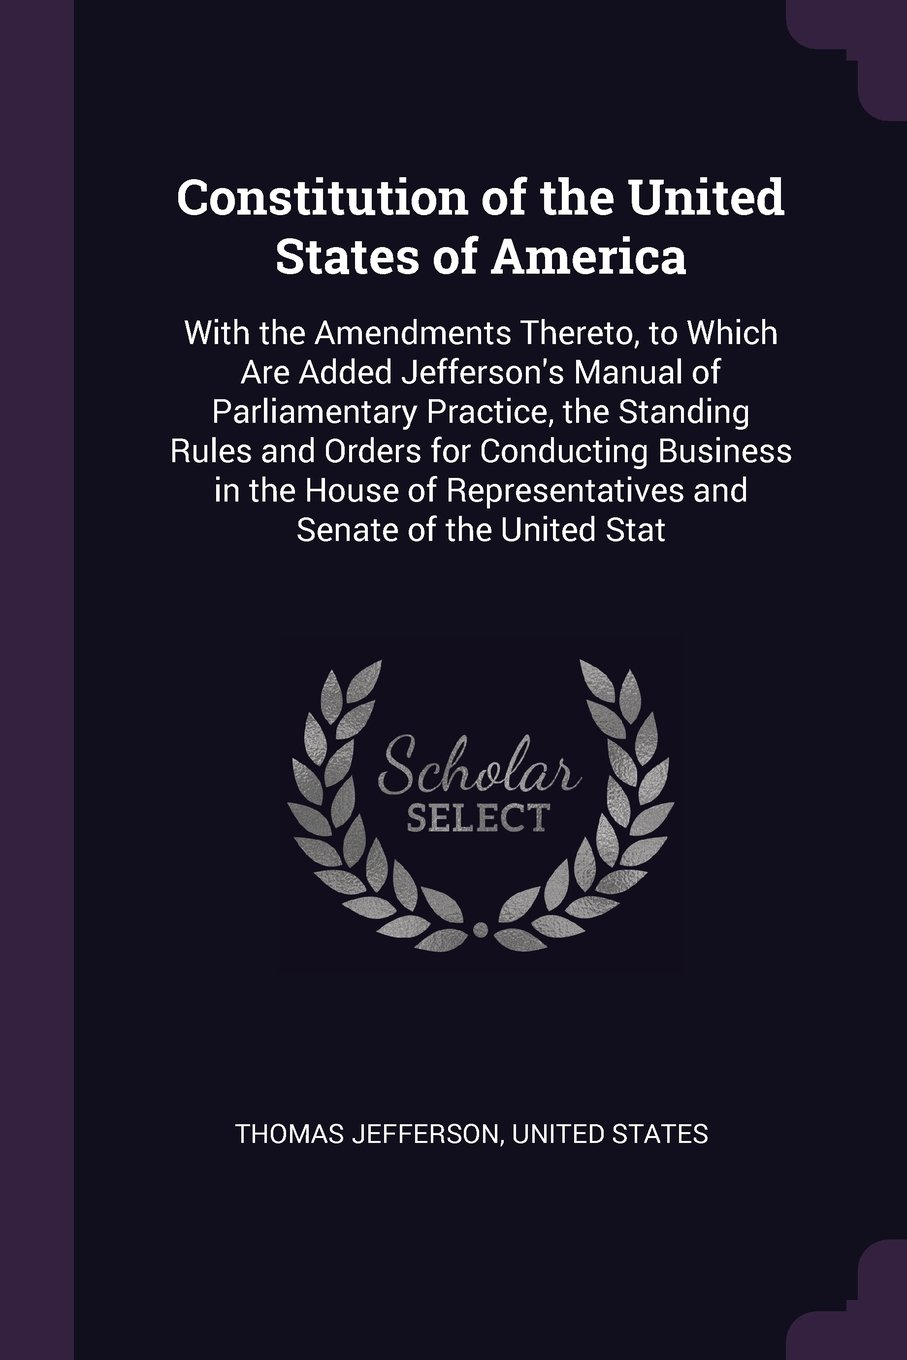 Download Constitution of the United States of America: With the Amendments Thereto, to Which Are Added Jefferson's Manual of Parliamentary Practice, the Representatives and Senate of the United Stat pdf